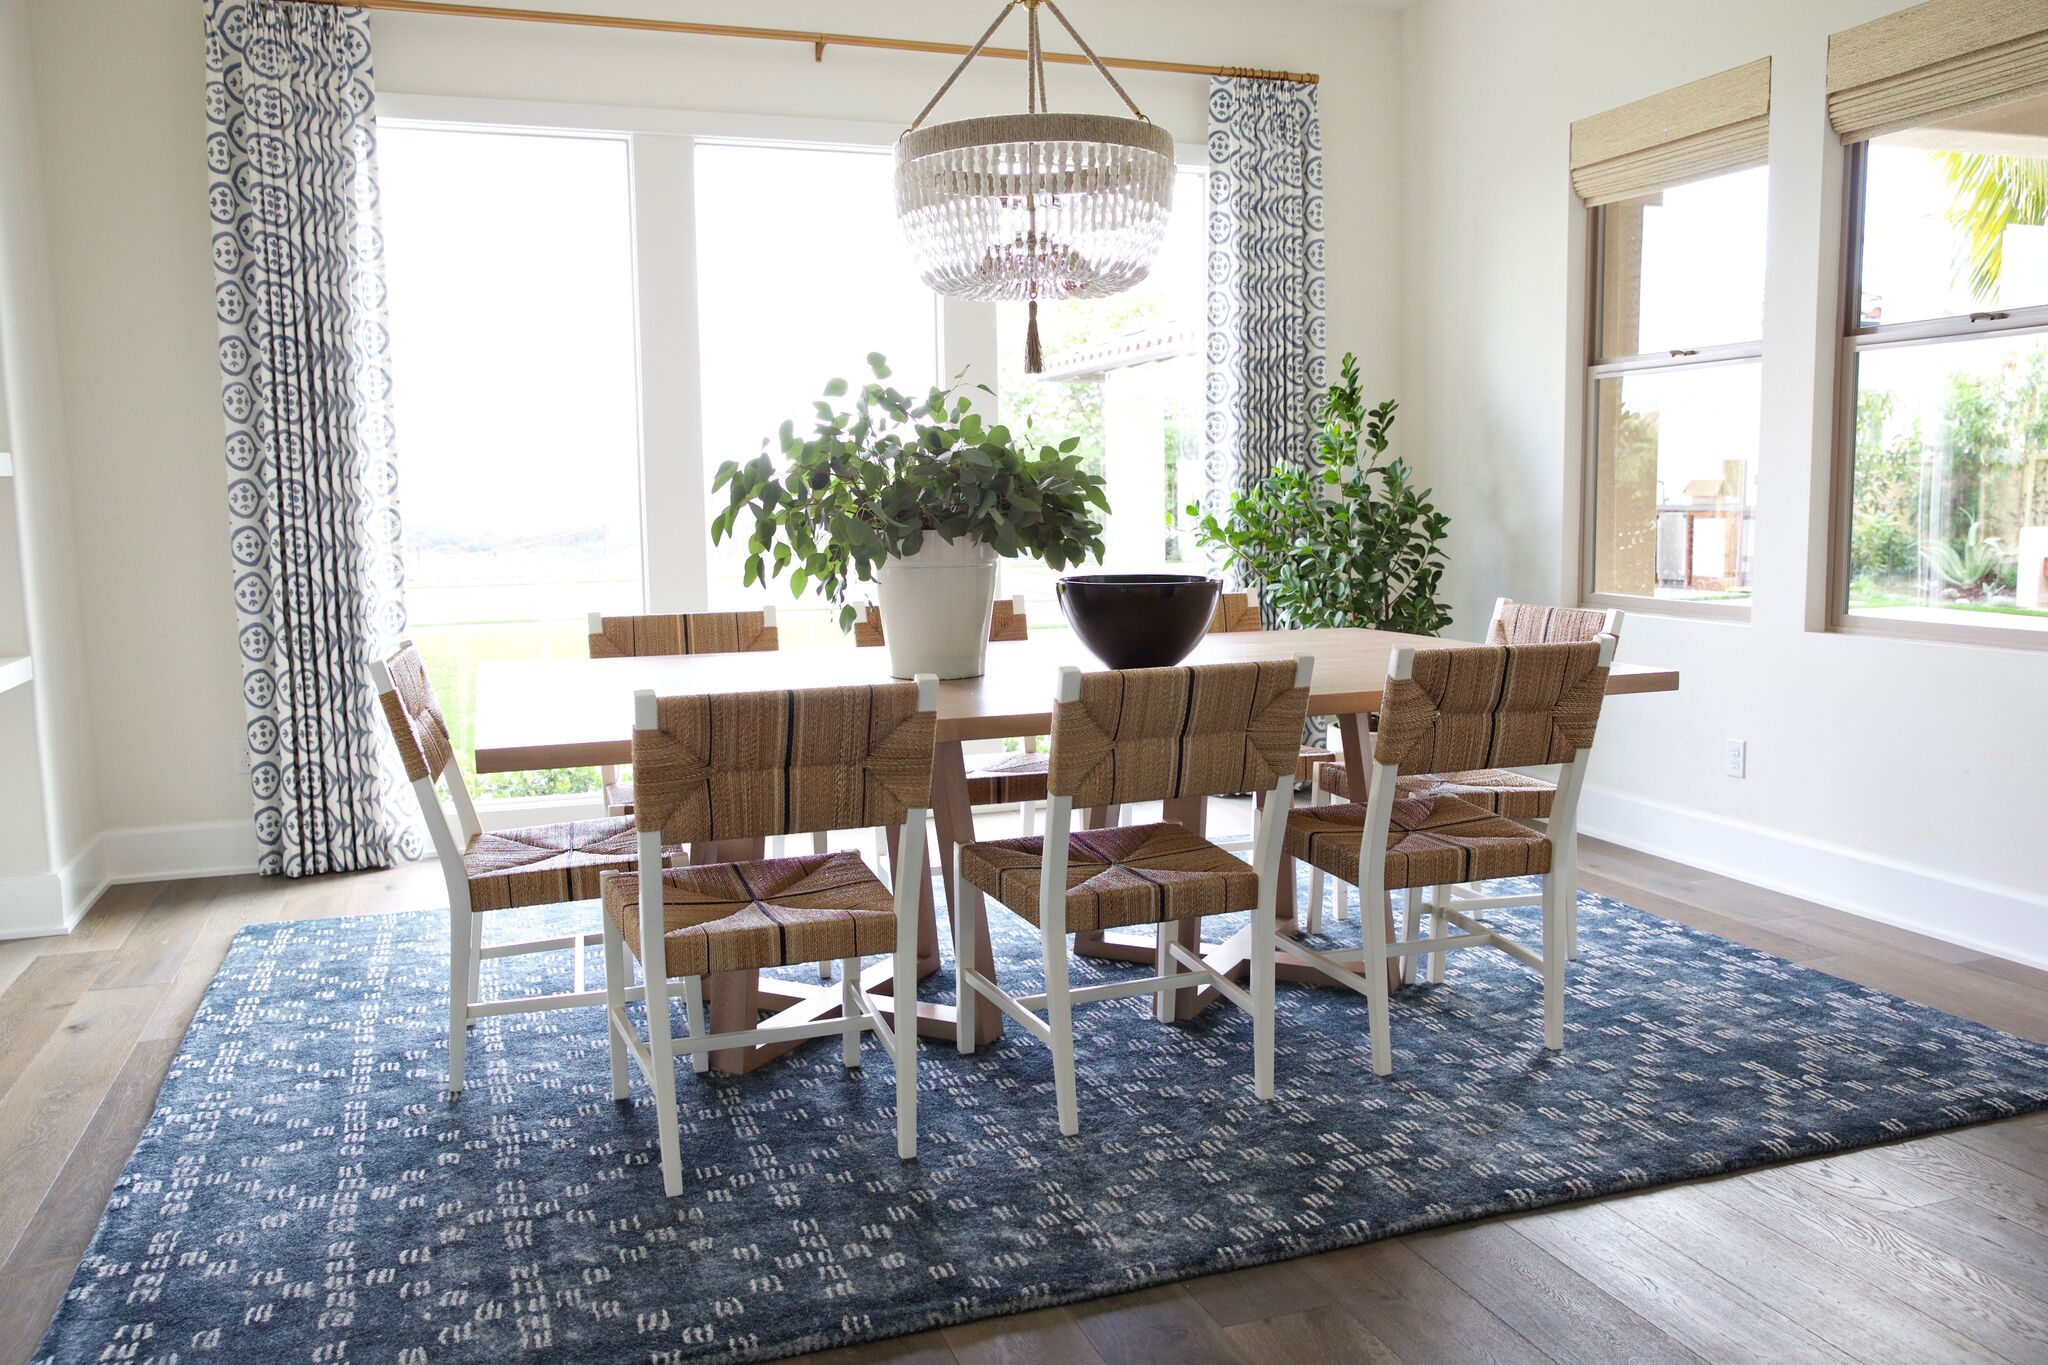 Large floor to ceiling windows behind table